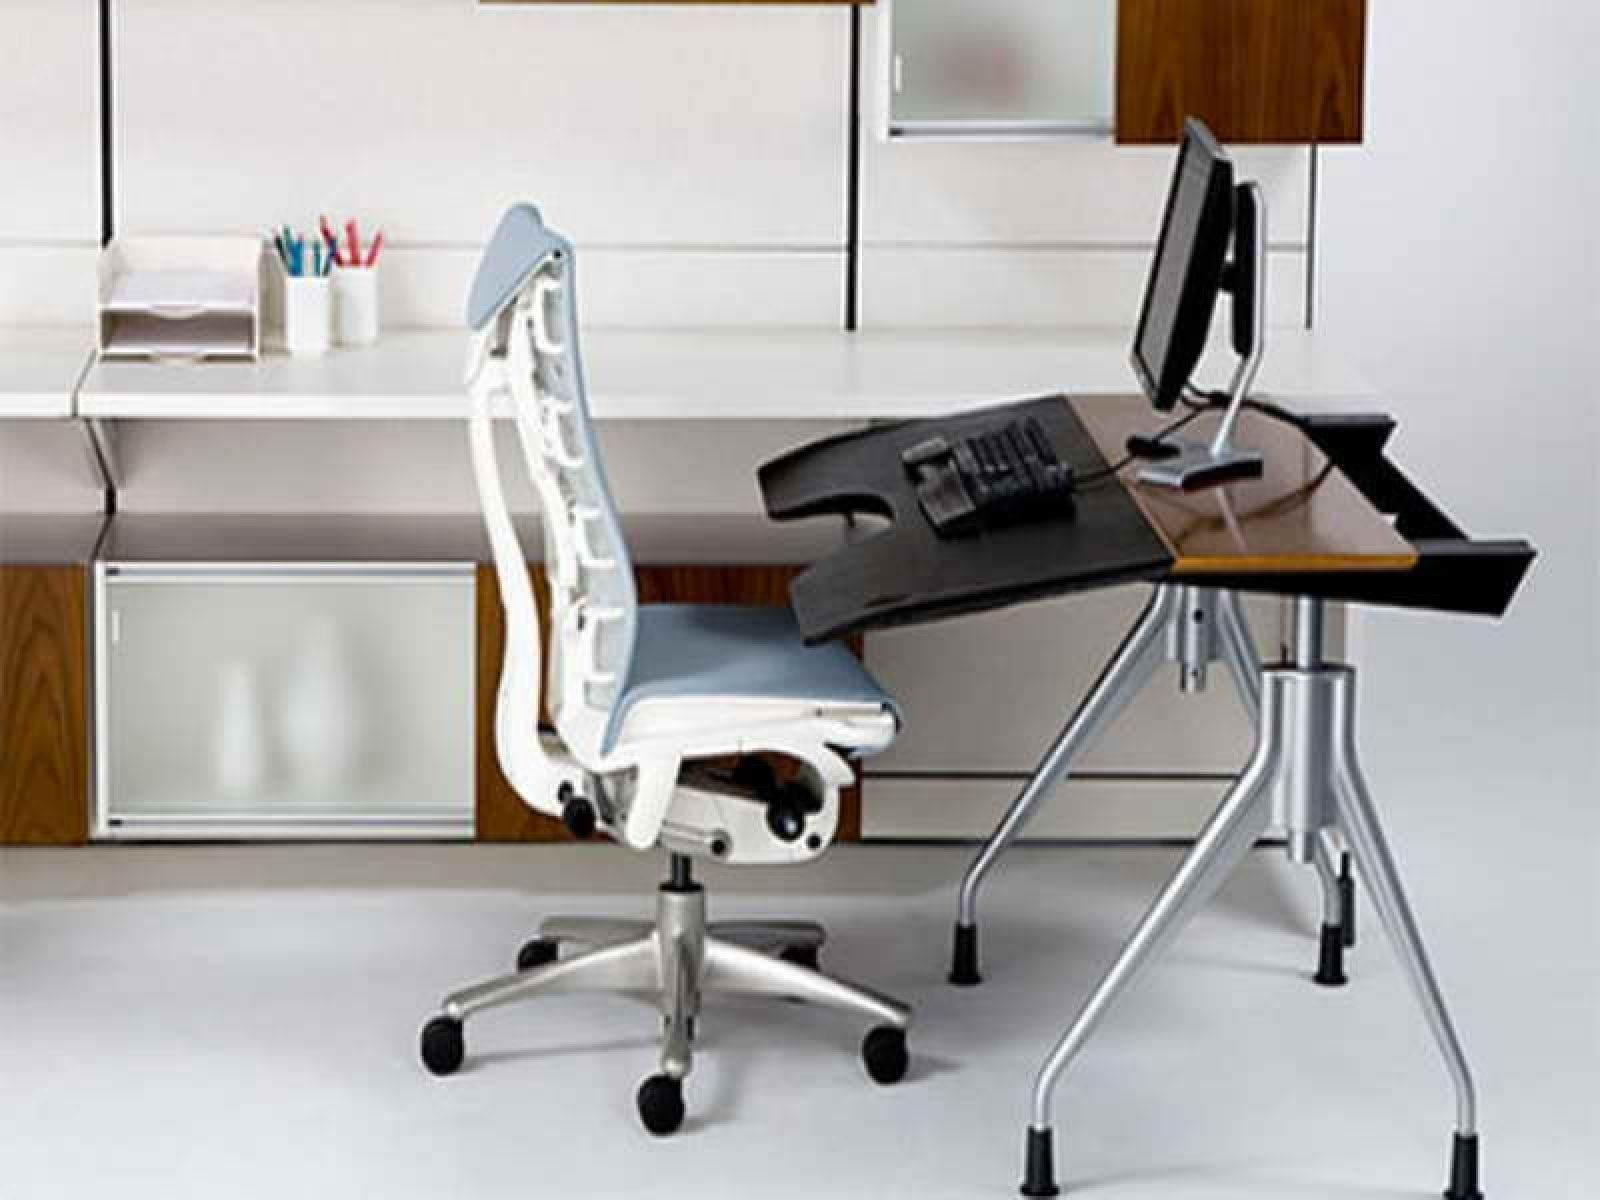 ergonomic furniture for home ergonomic chairs for home office #ergonomicchairs AMRRTUE